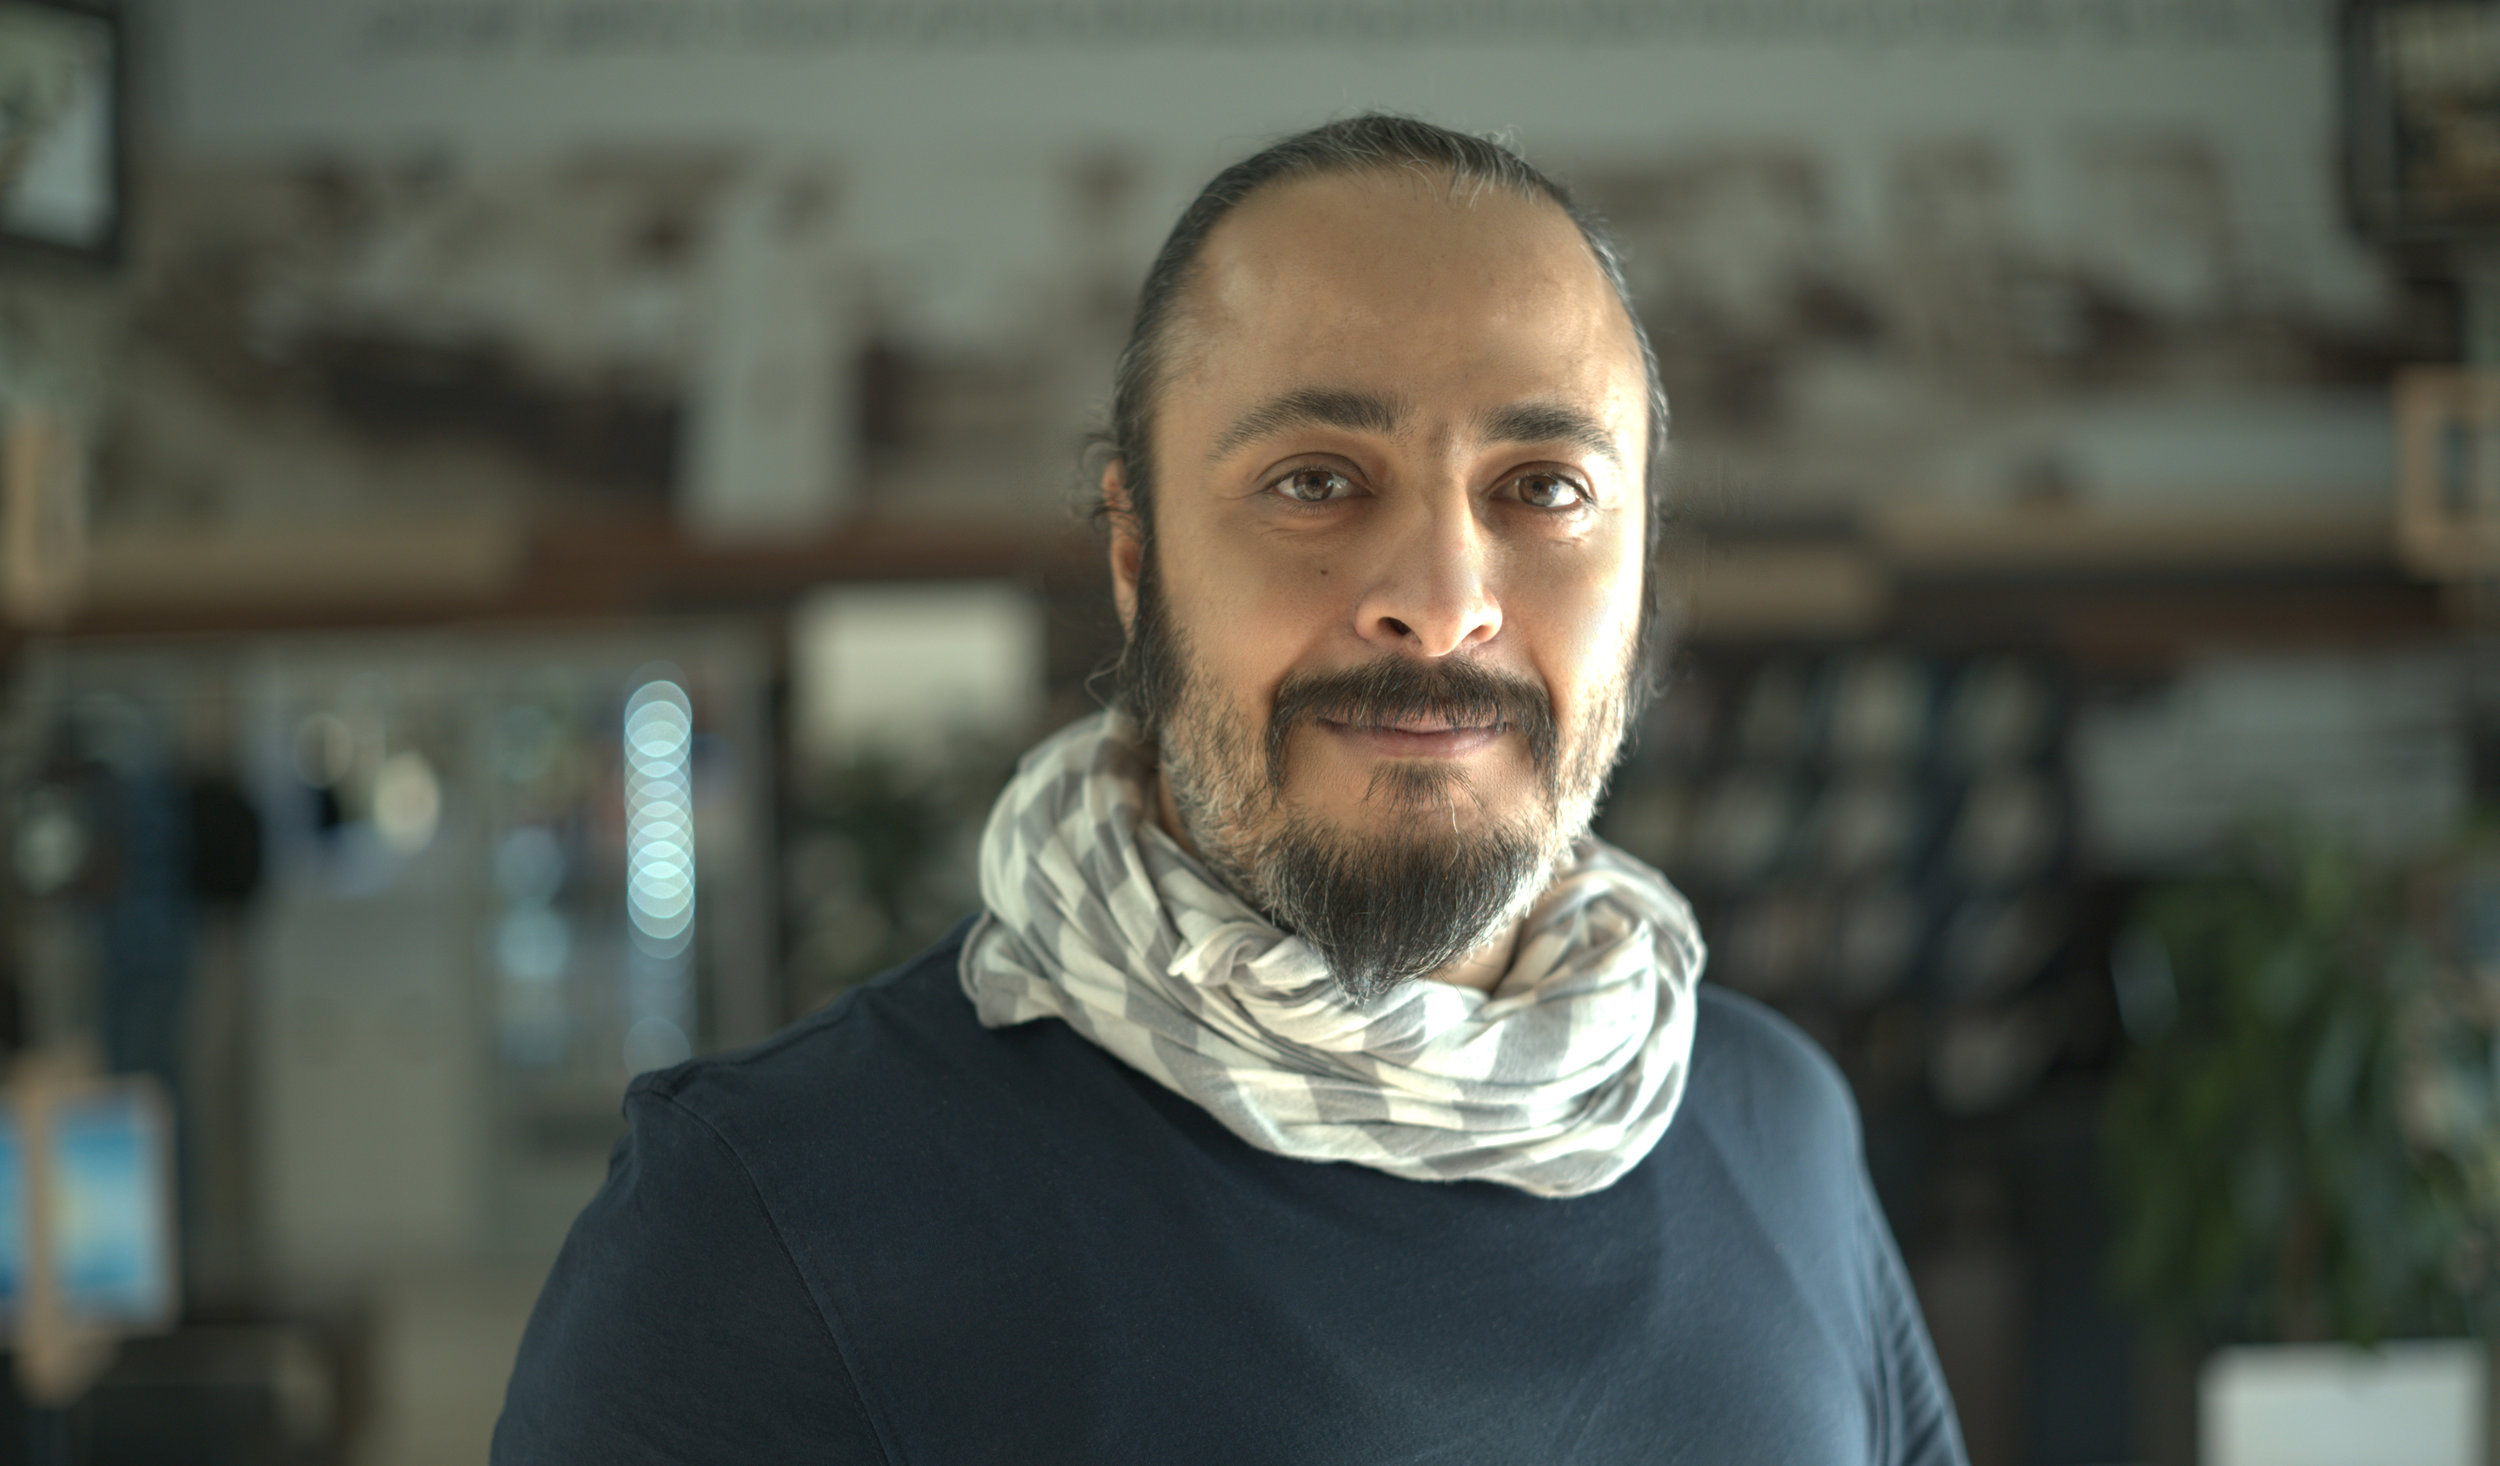 HASSAN MANASRAH - Hassan is a visual artist, illustrator, and comic creator. From 2008 to 2010, he worked as assistant art director for the animated cartoon series Pink Panther & Pals. Since 2010, he has illustrated 25 children books. In 2016, he won an Etisalat Award for best illustration for the Palestinian edition of The Blue Pool of Questions. More art from Hassan at https://www.behance.net/manasrah.